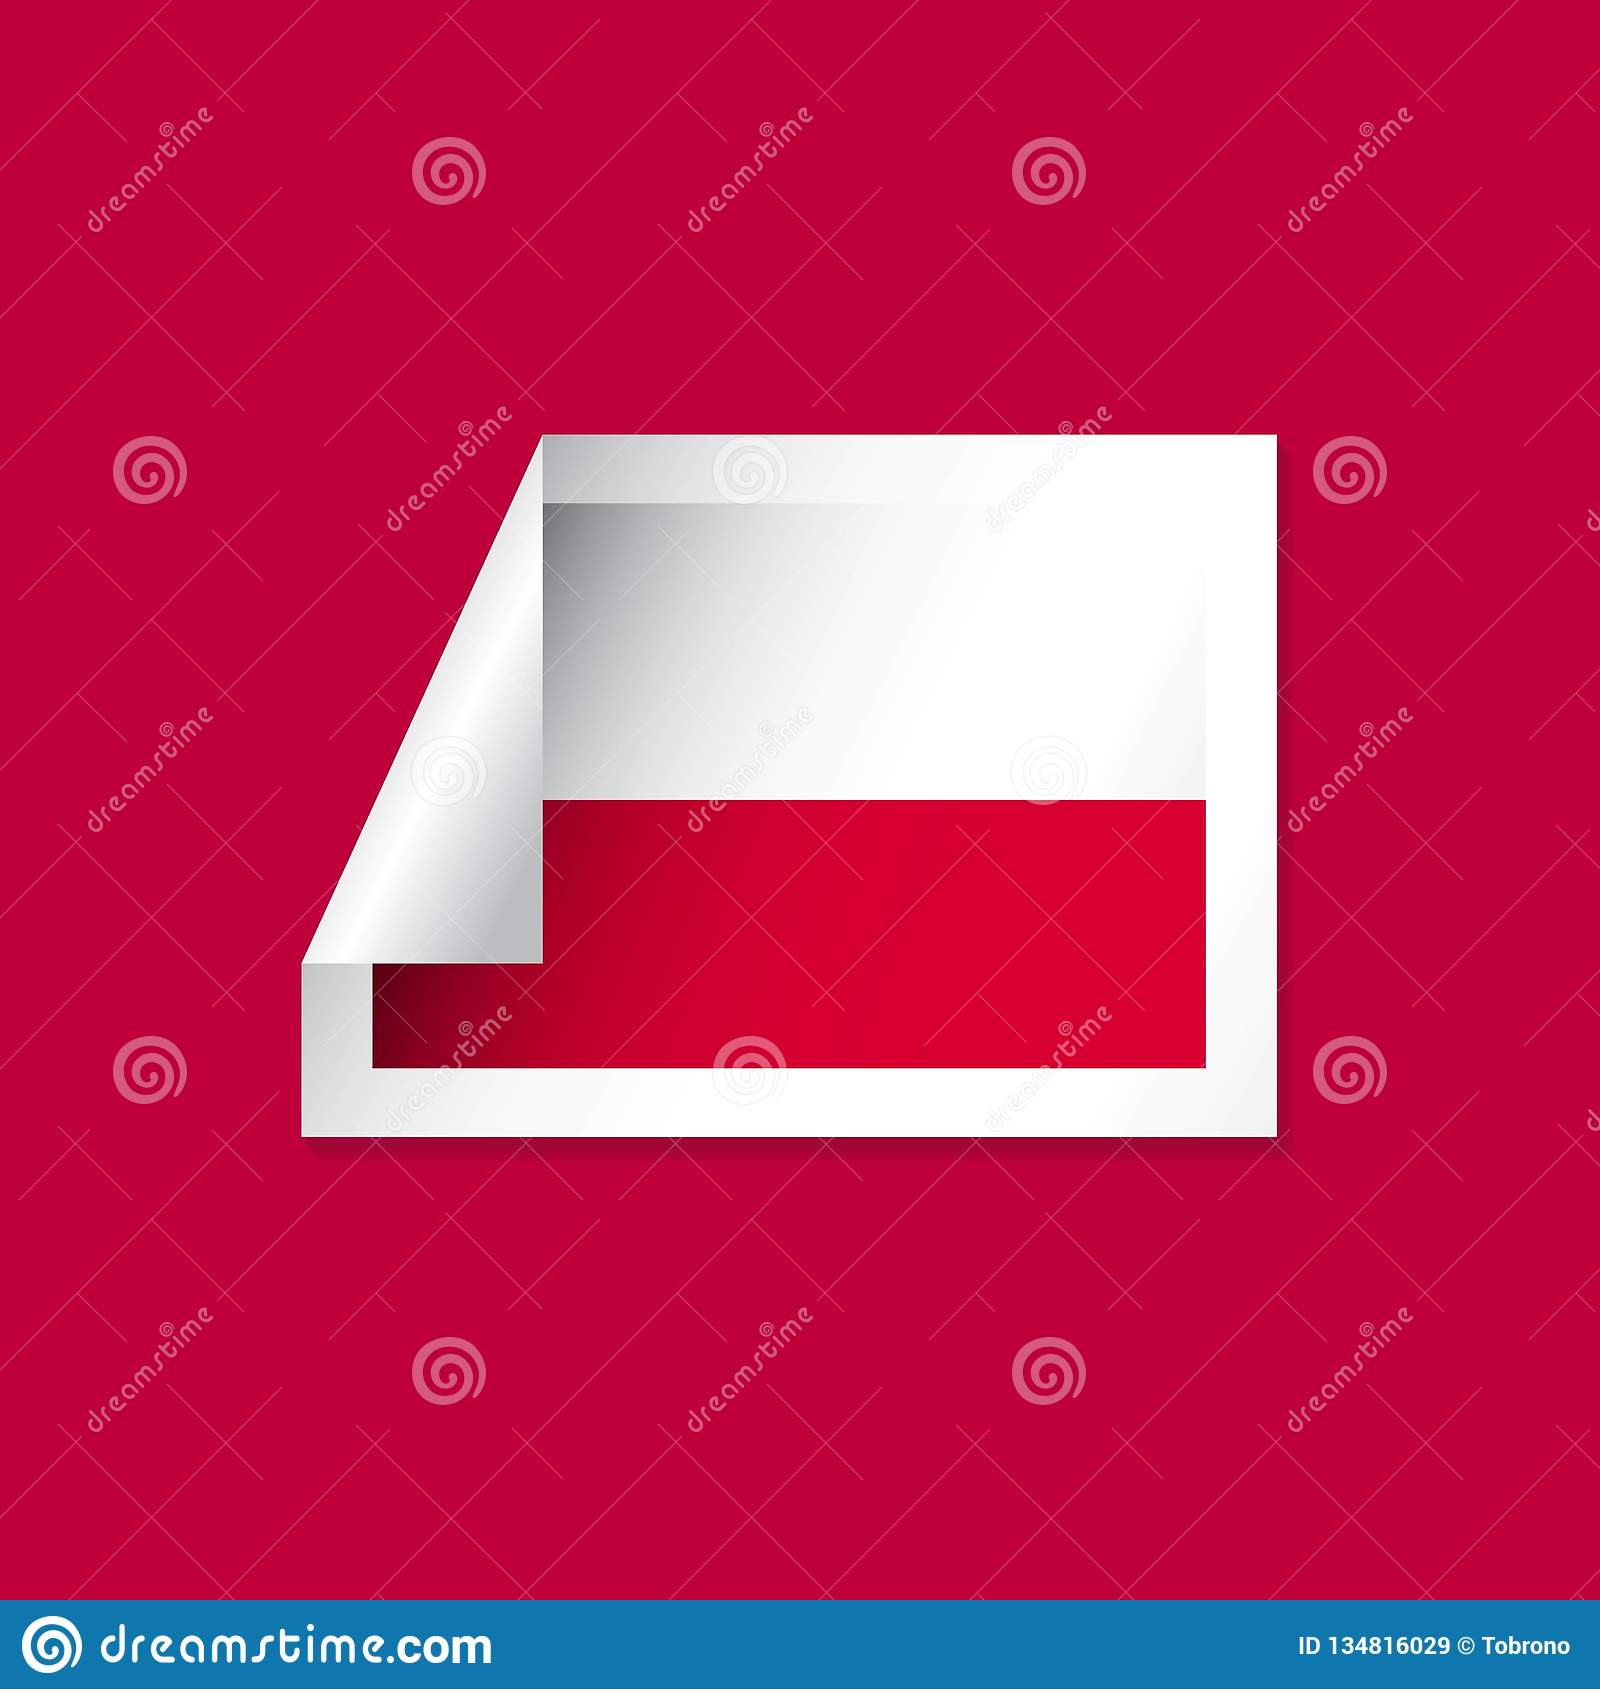 Poland Label Flags Vector Design Illustration